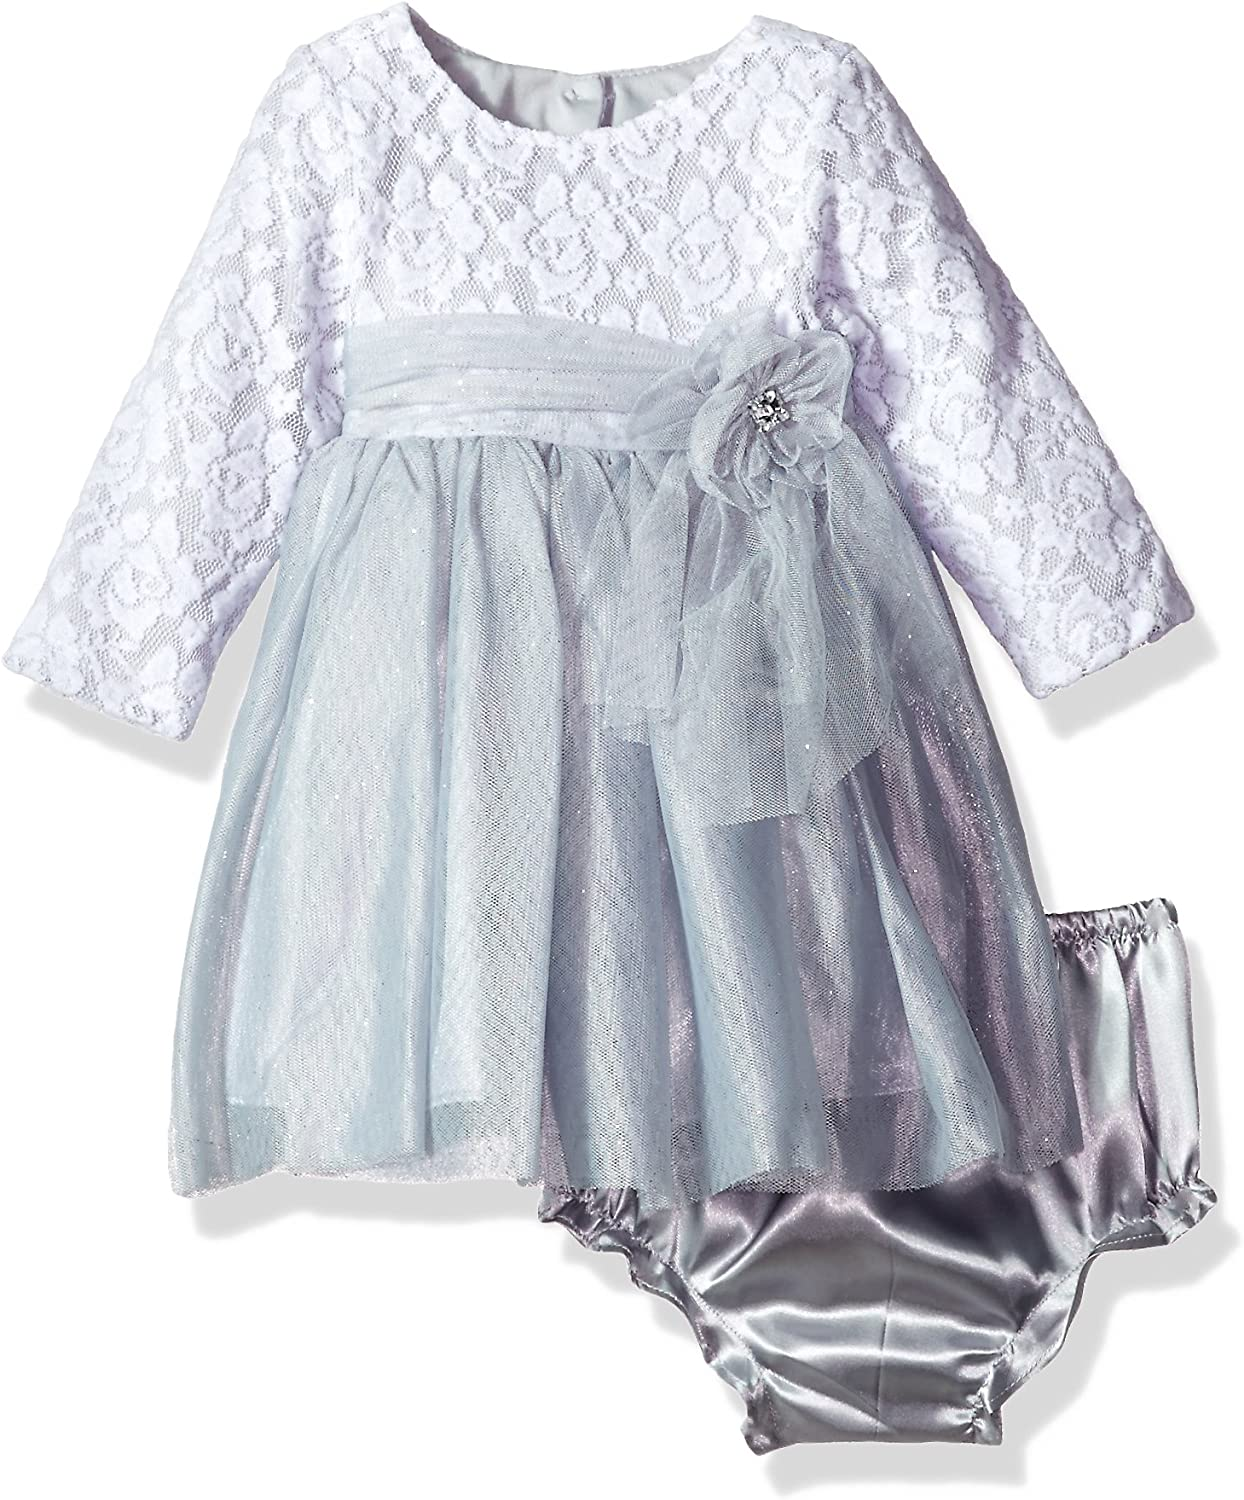 Youngland Girls' Baby Lace Bodice Sparkle Tulle Dress